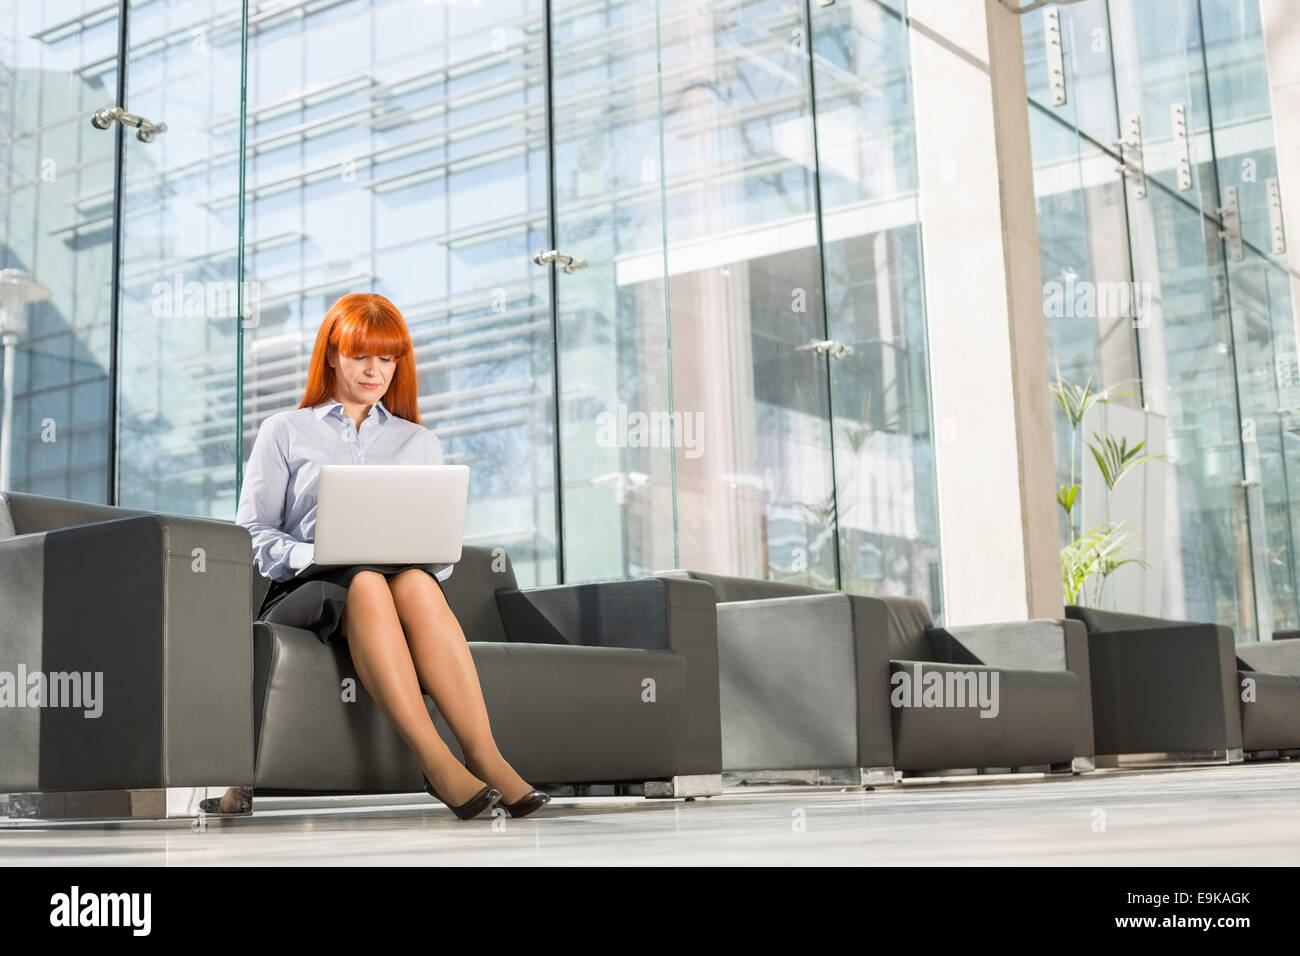 Full-length of middle-aged businesswoman using laptop at office lobby - Stock Image